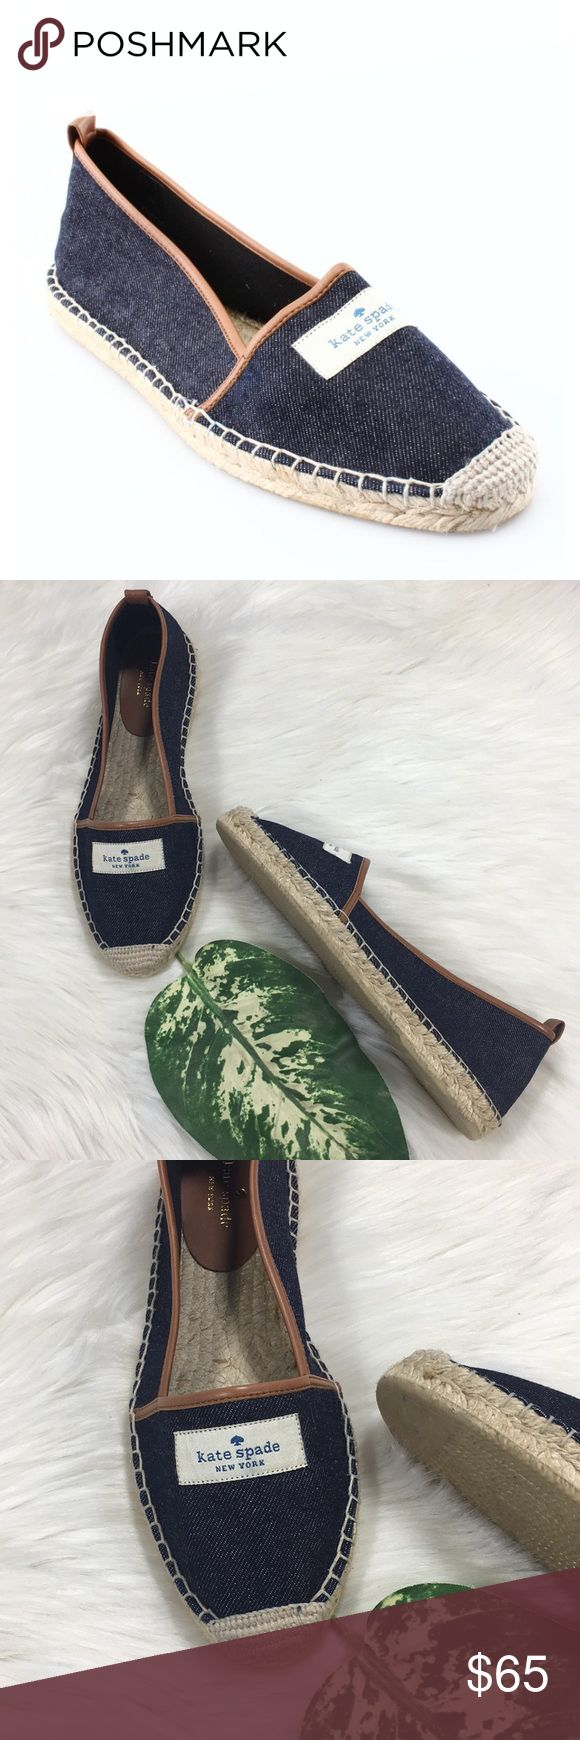 Kate Spade Denim Signature Loafers In new without box condition! Super cute and rare! Size 8. Selling super cheap because the glue on the inside of the shoe (pictured). They were a gift and turned like that from being stored out of the box. Otherwise they are new and in perfect condition. Have only been tried on indoors on rug. kate spade Shoes Espadrilles